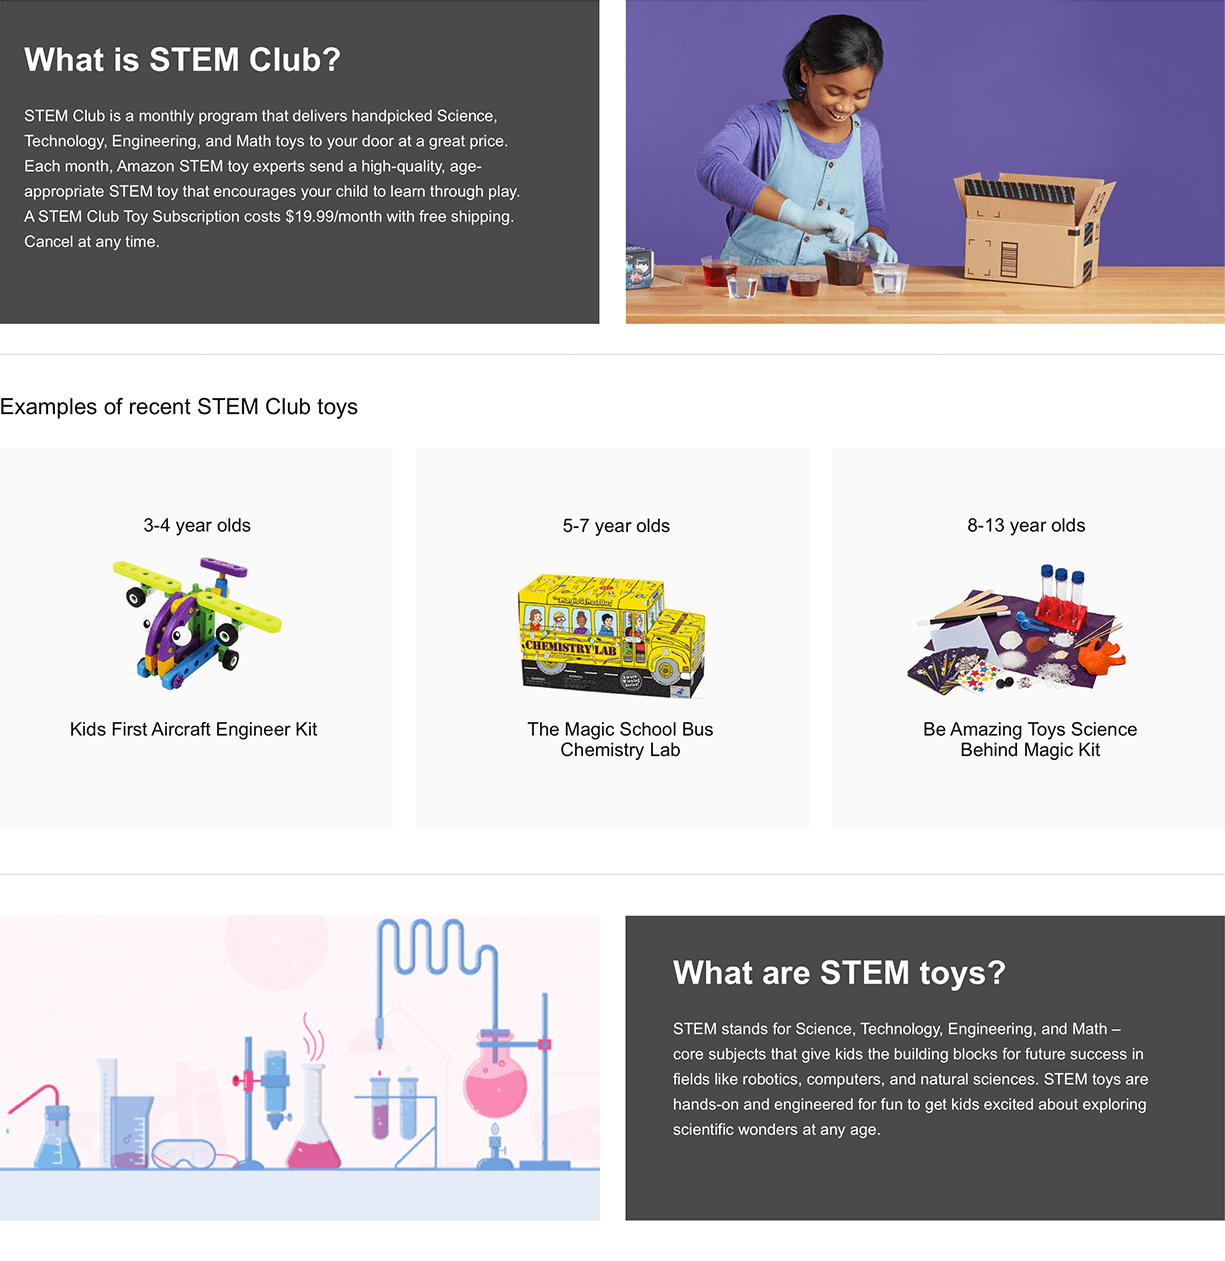 Amazon.com: STEM Club Toy Subscription: 3-4 year olds